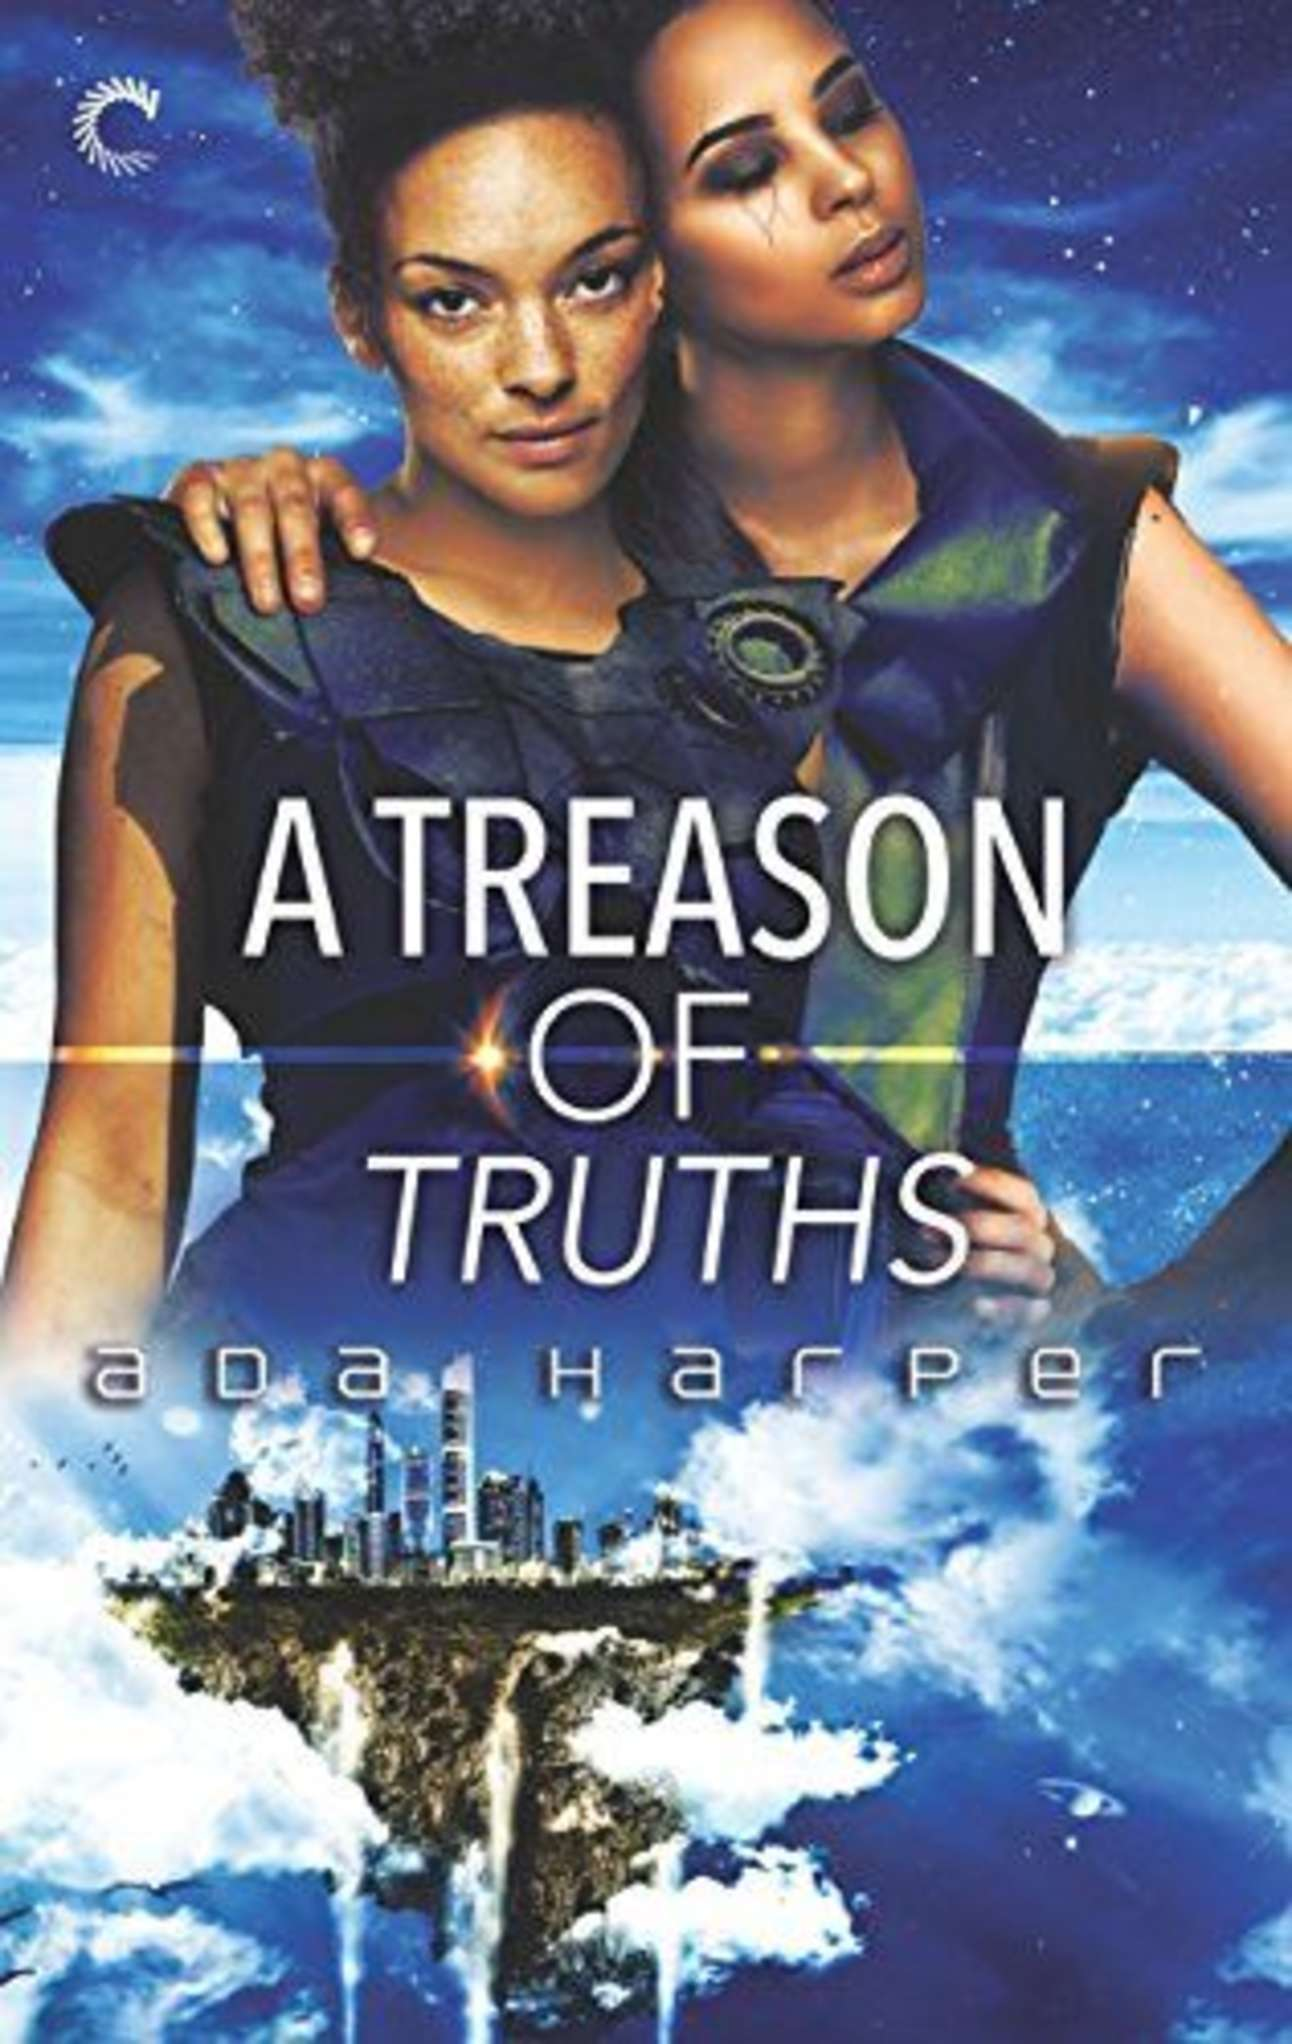 A Treason of Truths